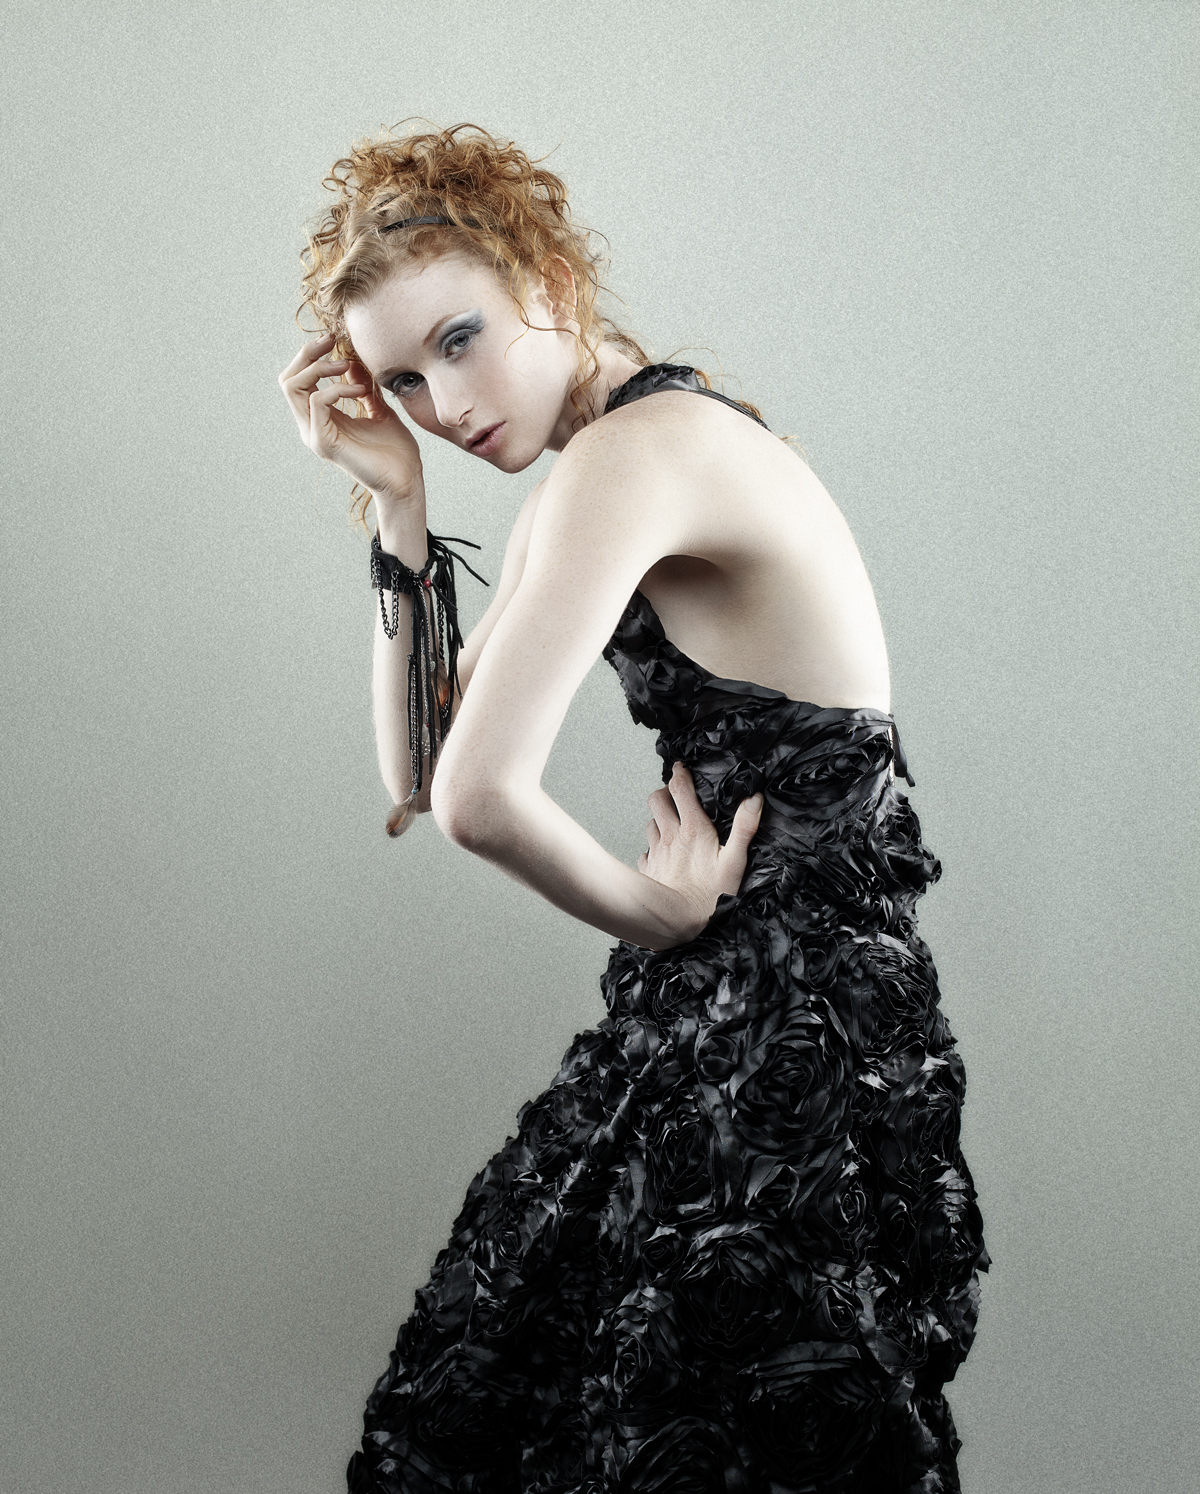 grimes-j-toppro-gallery-2012-09